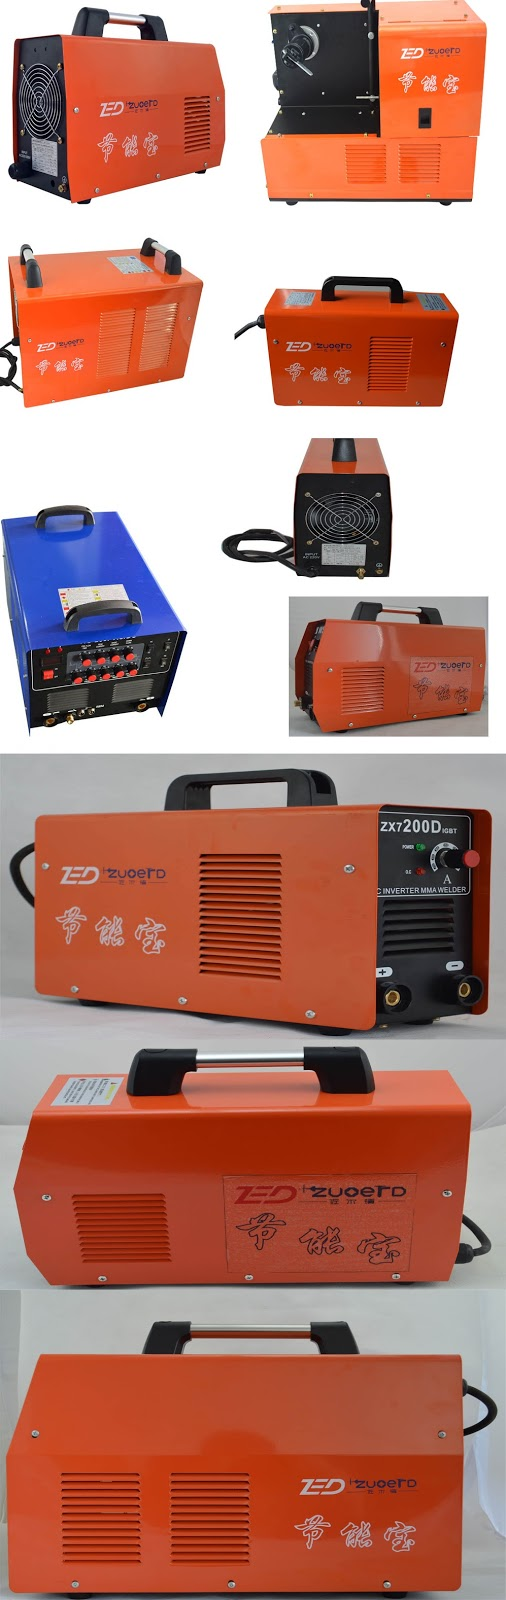 Welding Inverter Circuit Diagram Wiring Library Machine Mos Dc Tig Welder Igbt Gas Shielded Air Plasma Cutting